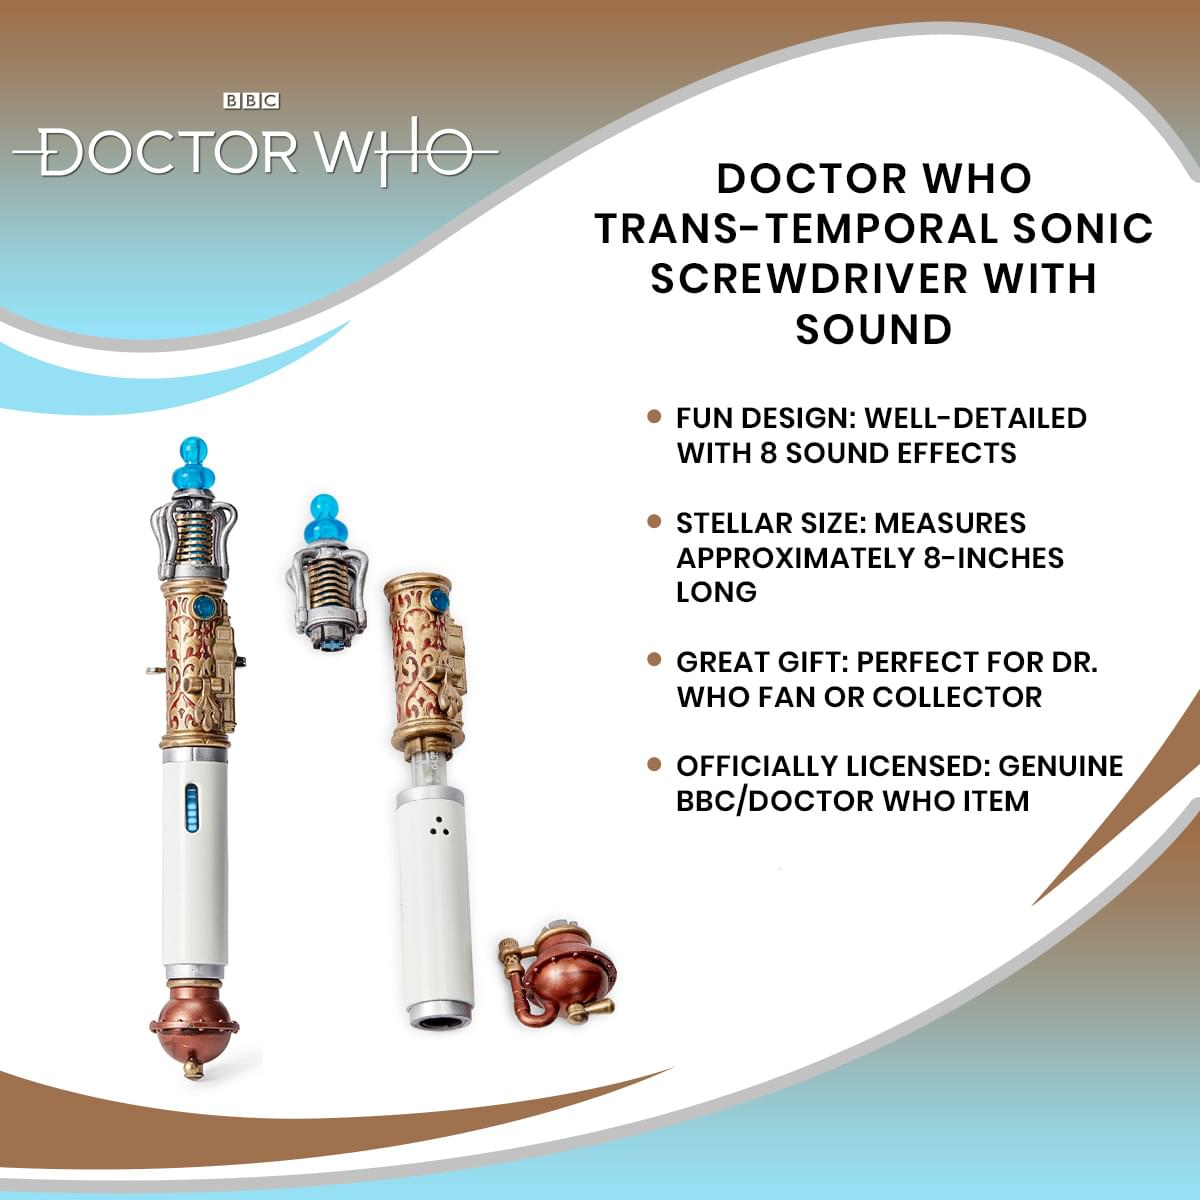 Doctor Who Trans-Temporal Sonic Screwdriver With Sound